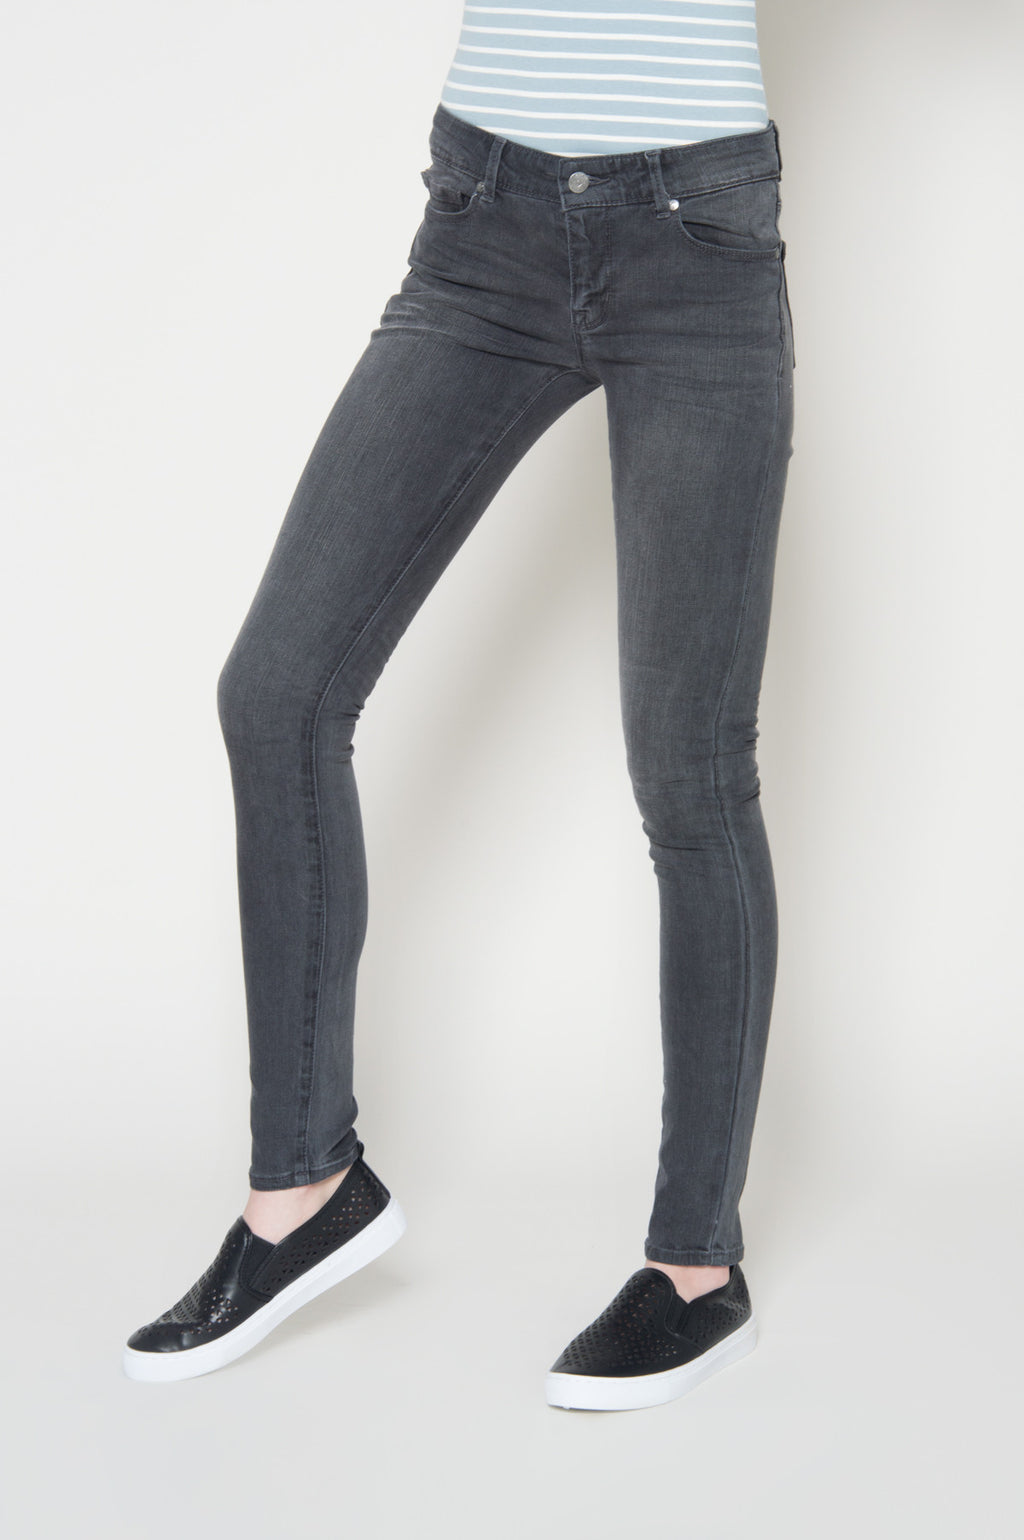 Moonlight skinny jean, Bottoms